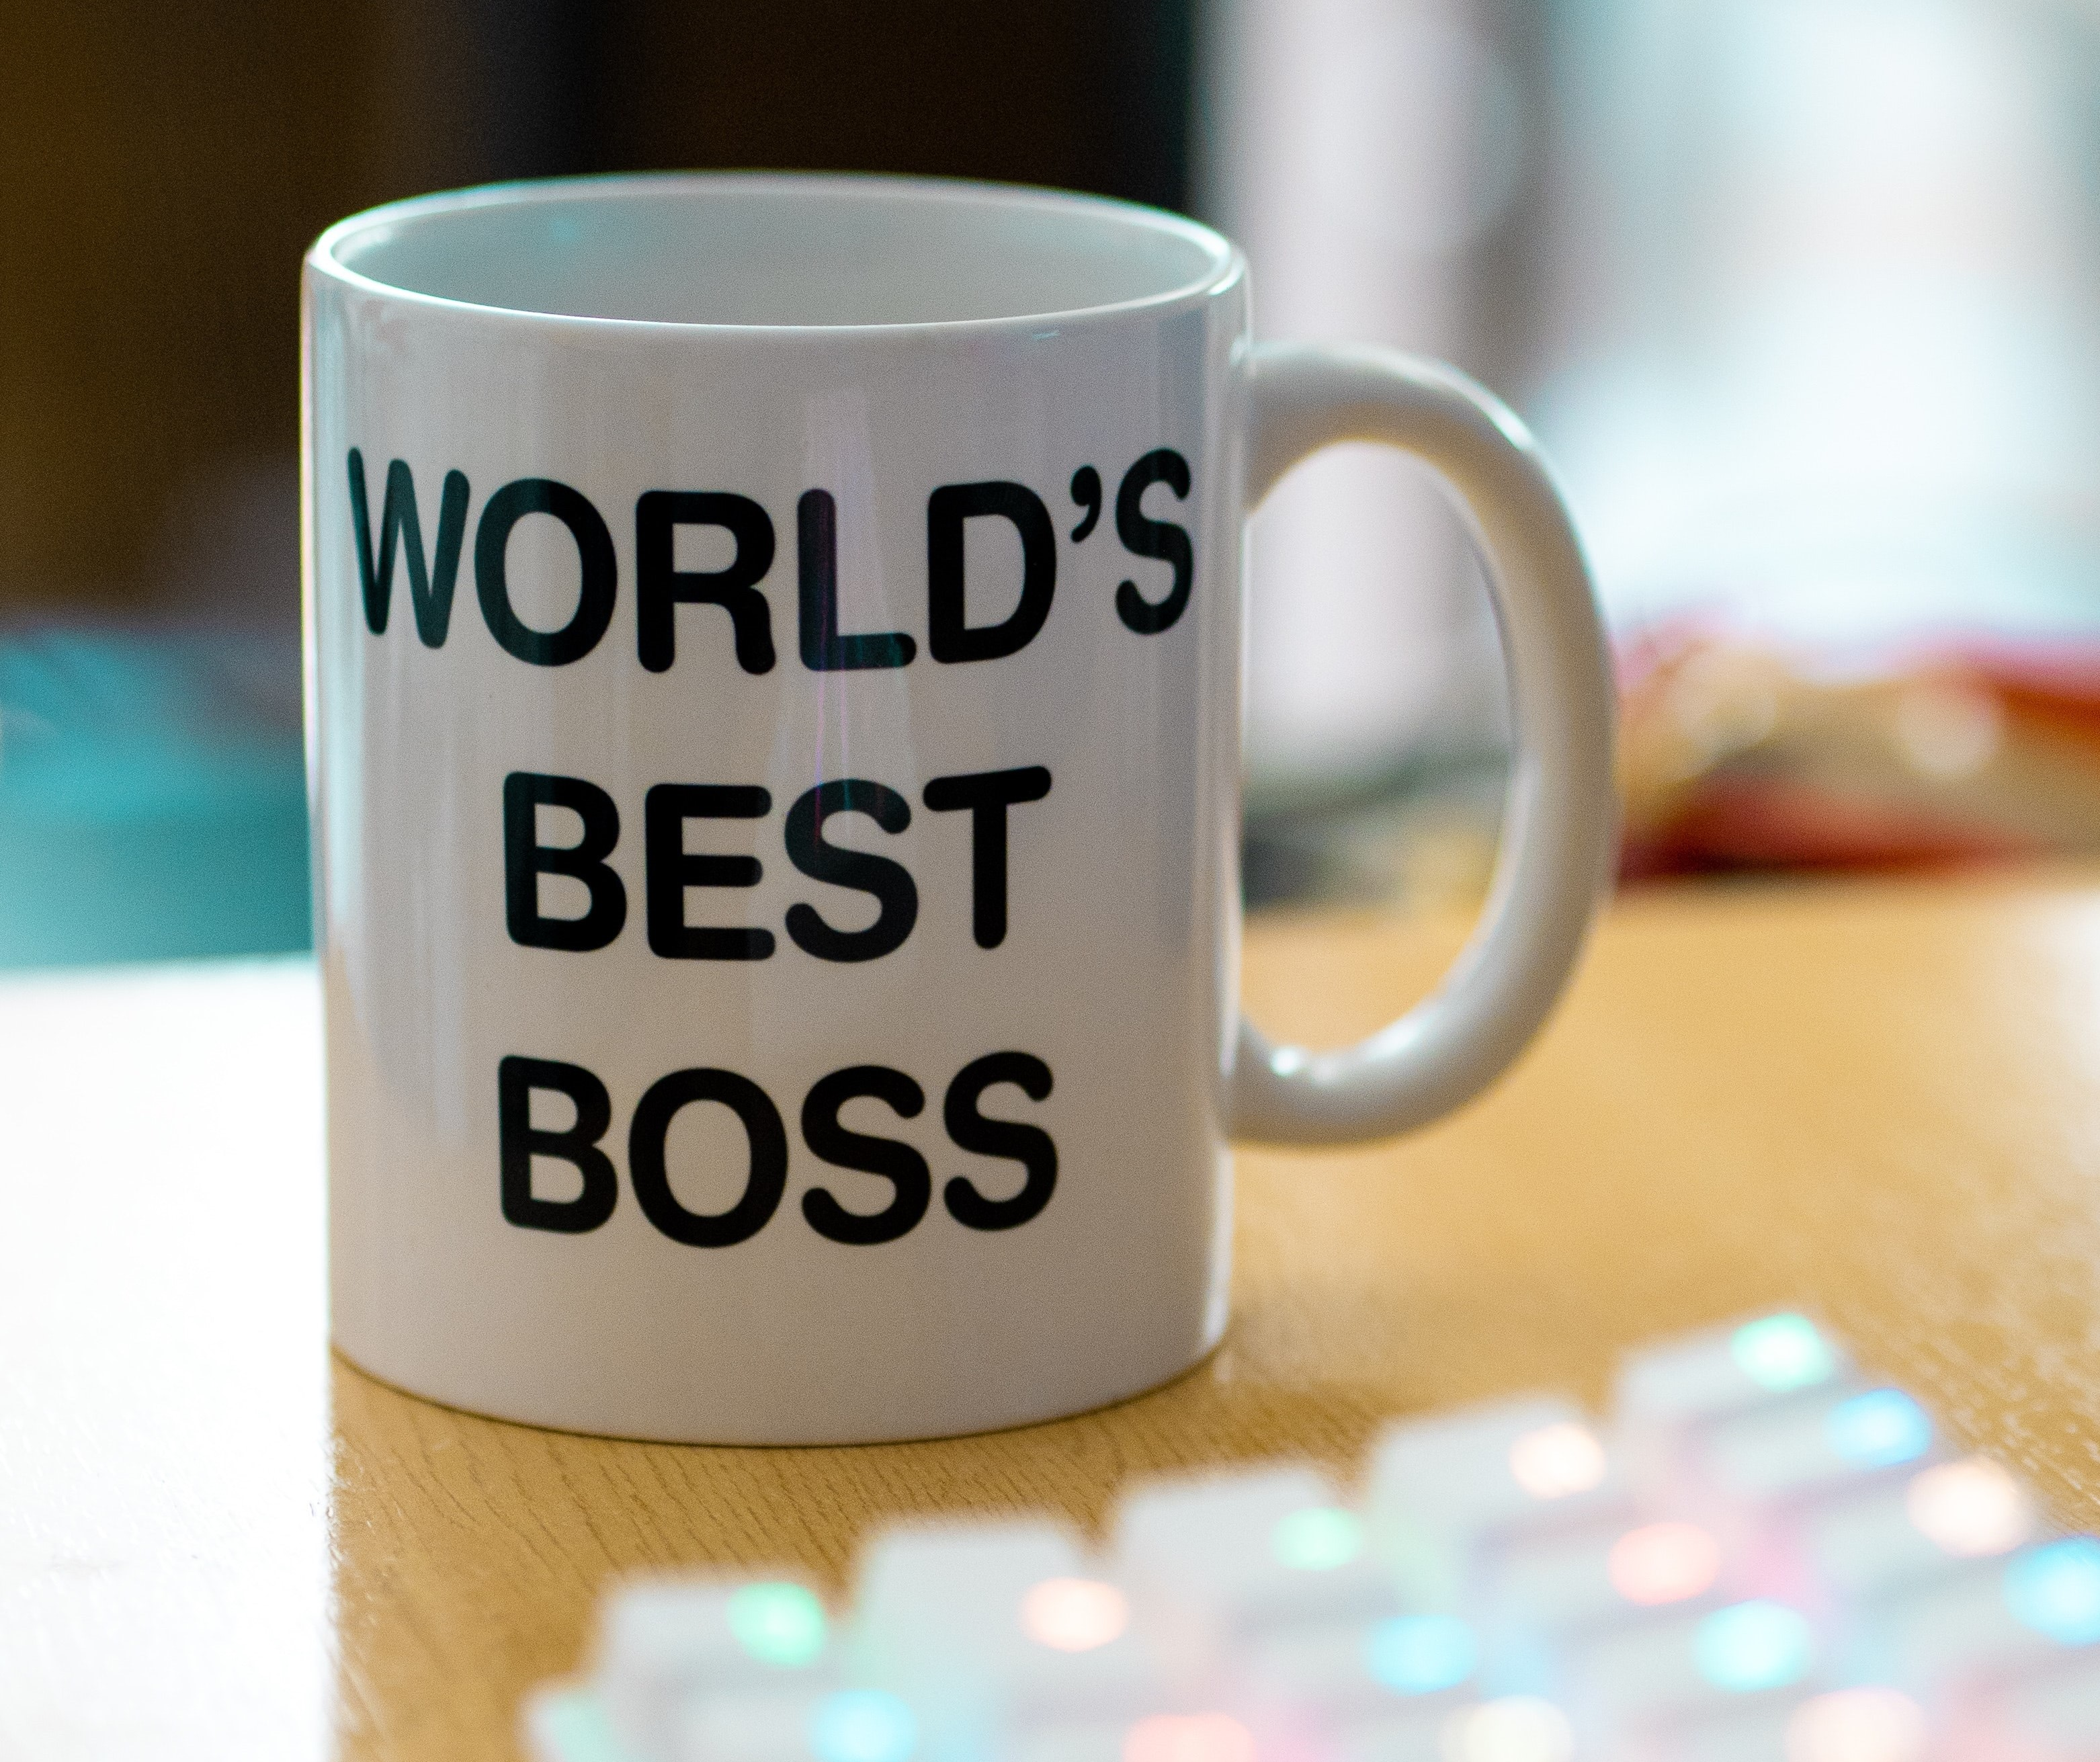 5 Qualities of Exceptional Leaders